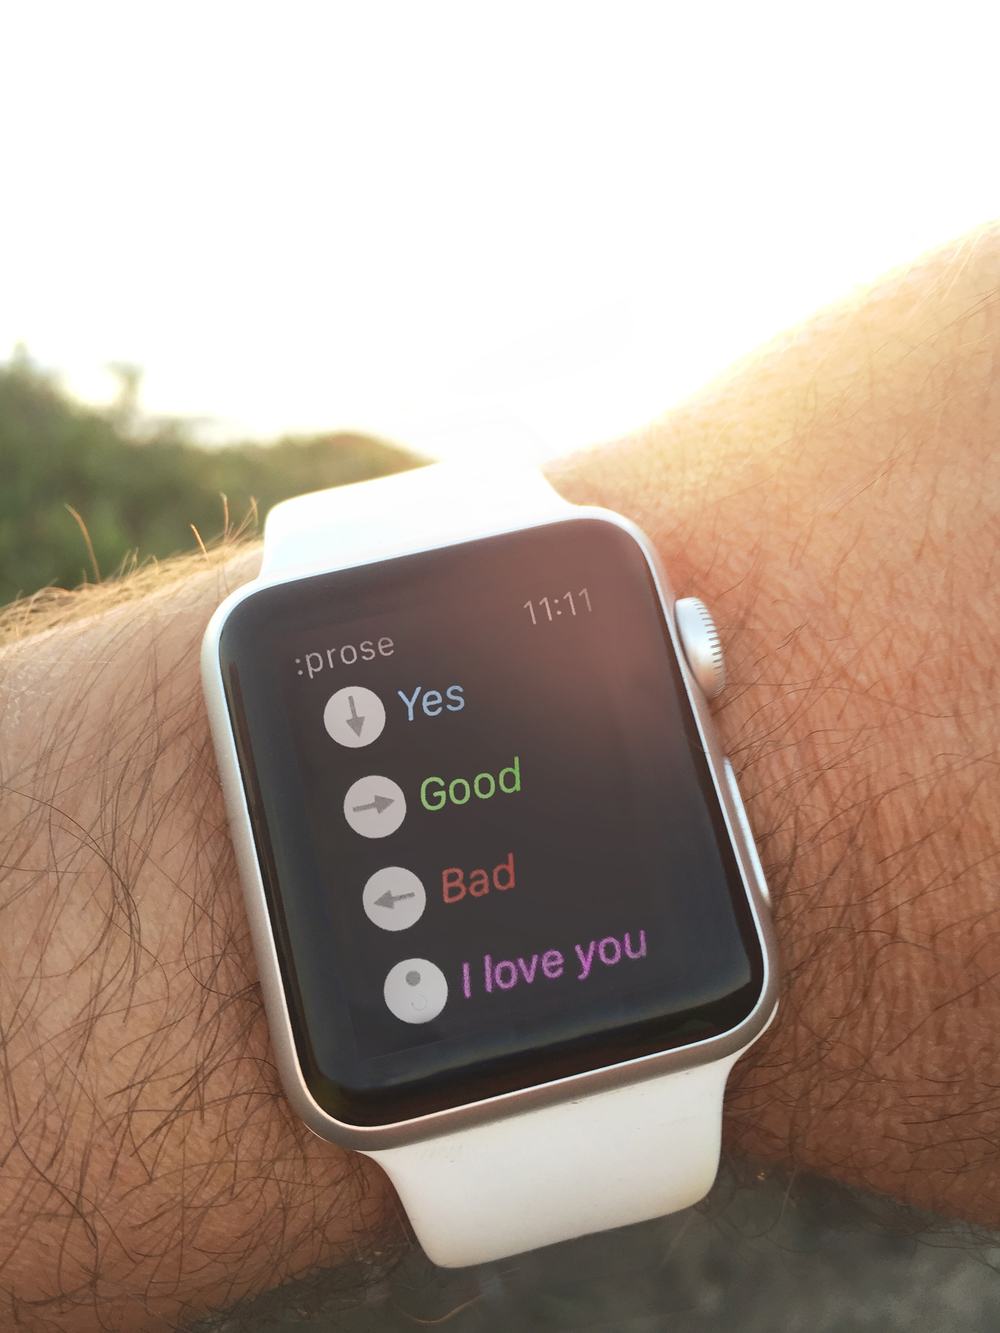 :prose on Apple Watch. Remotely speak aloud by tapping your favorite phrases.